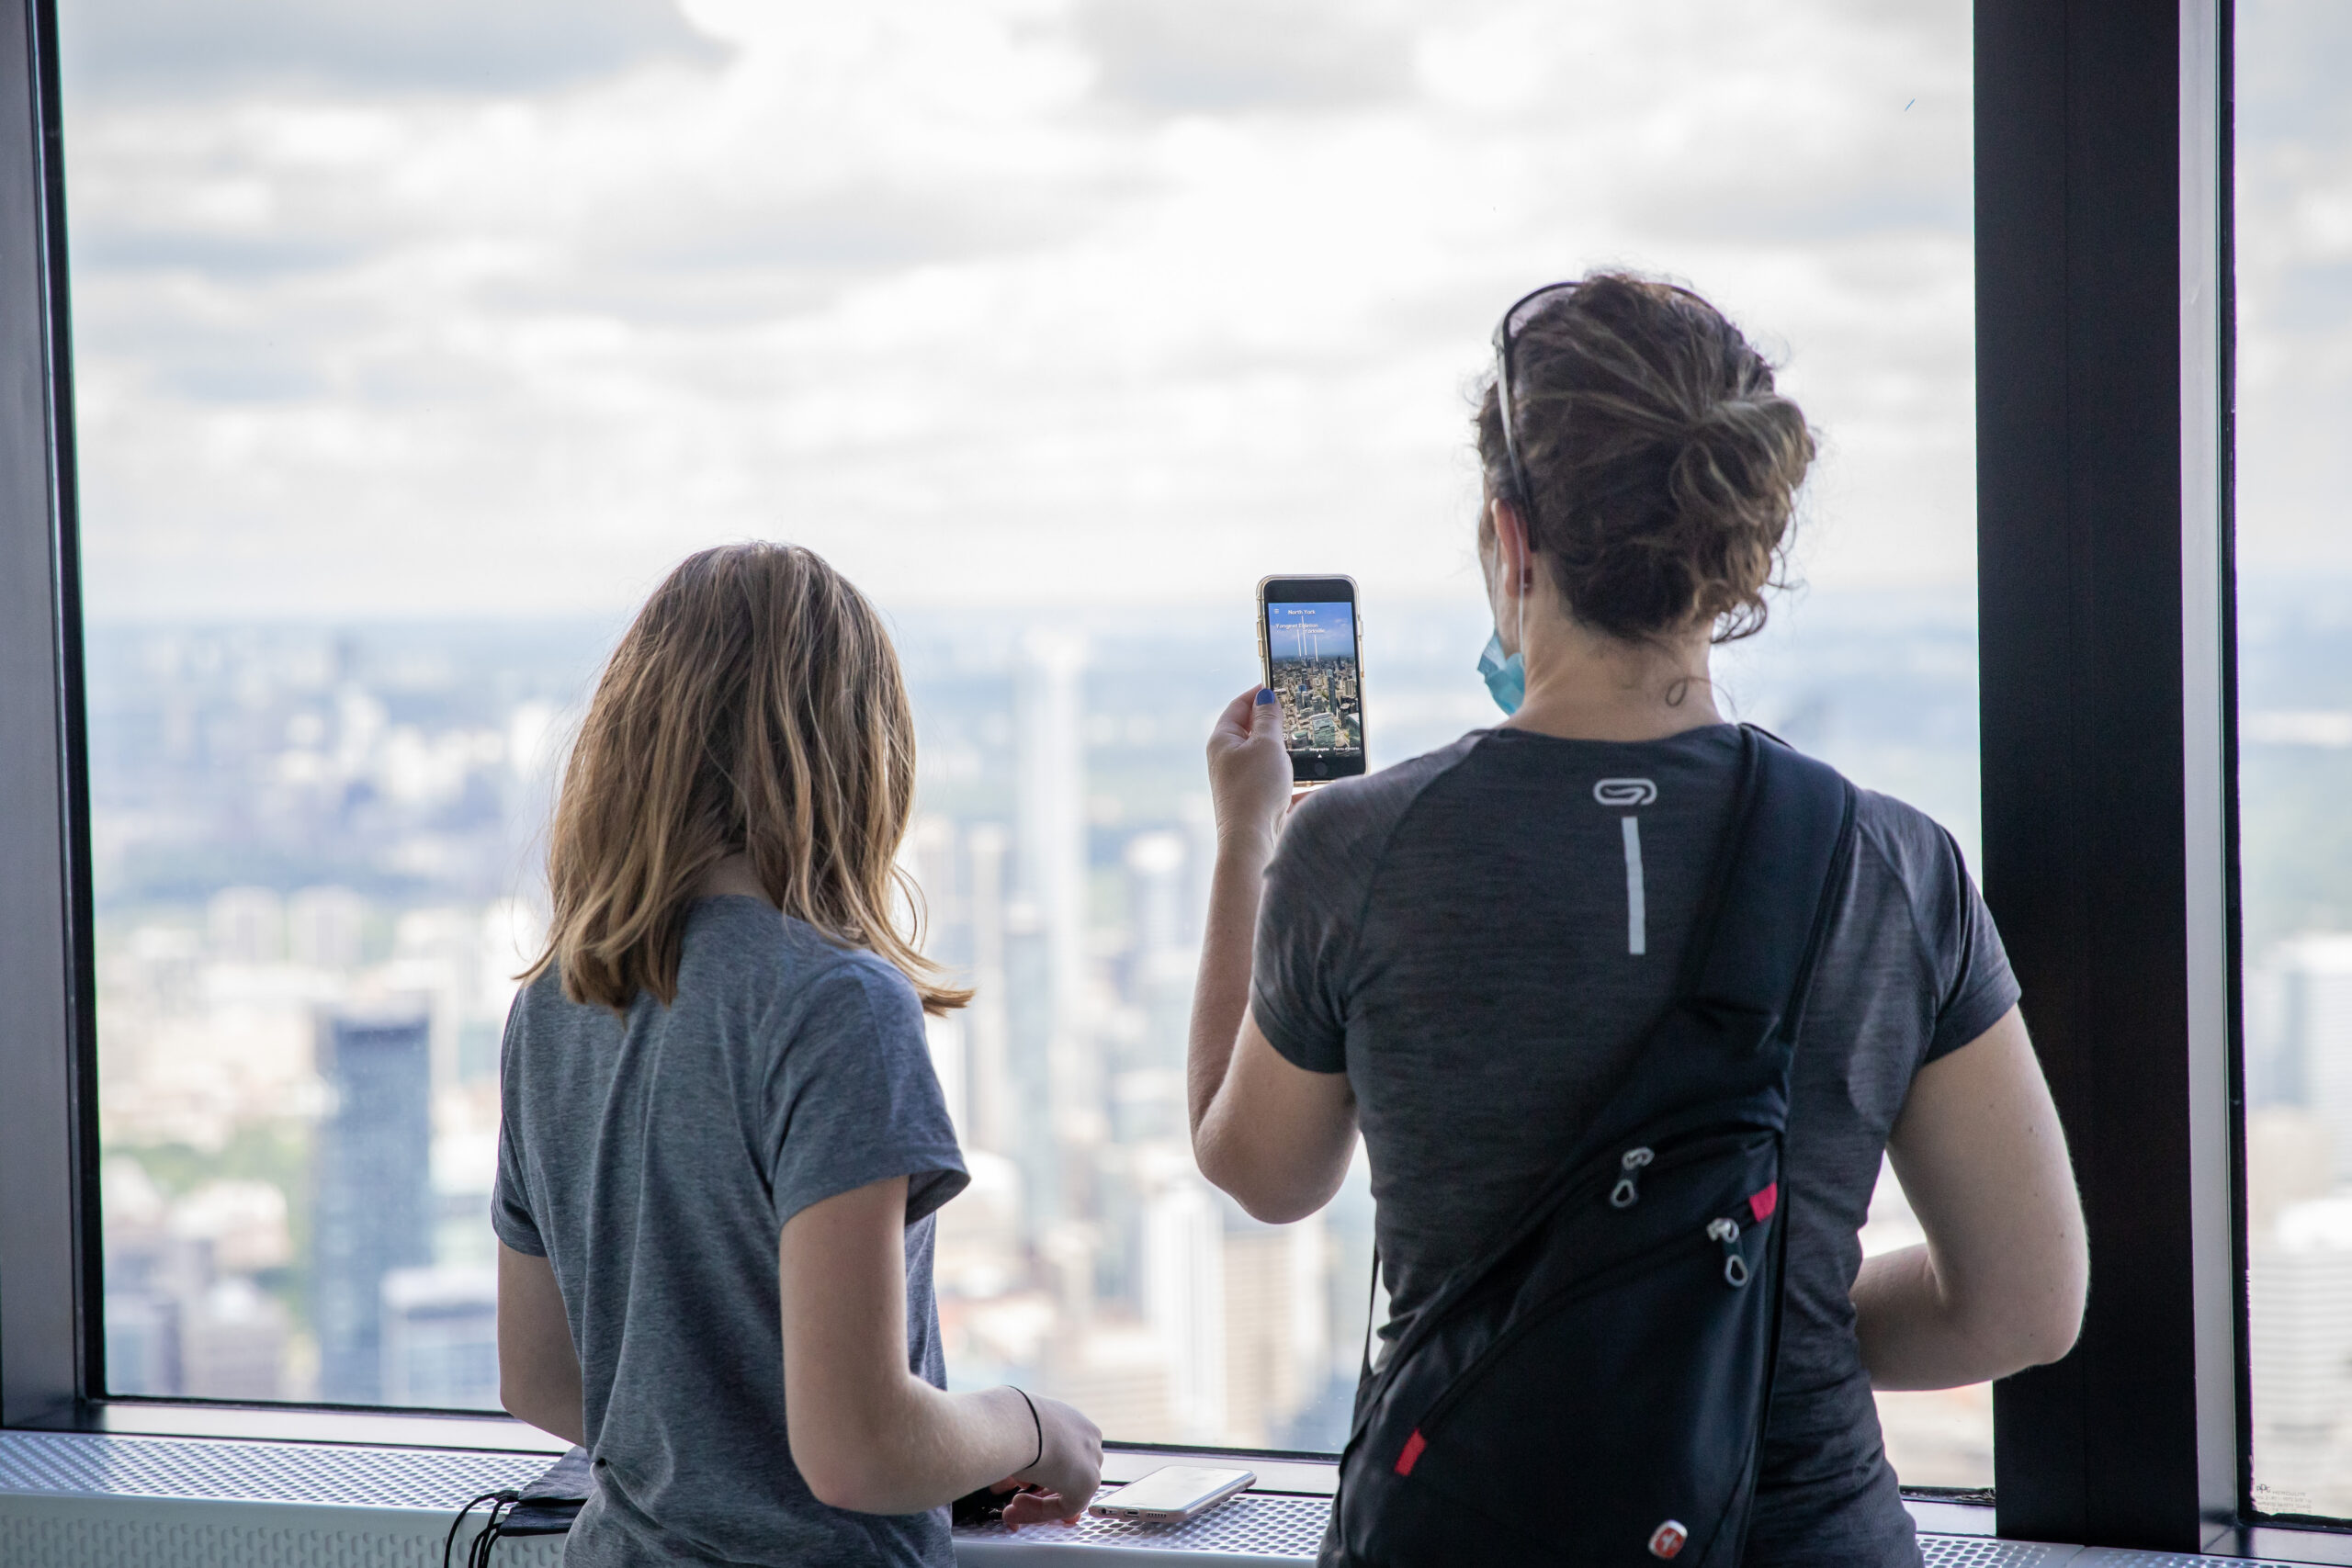 Download the CN Tower Viewfinder app